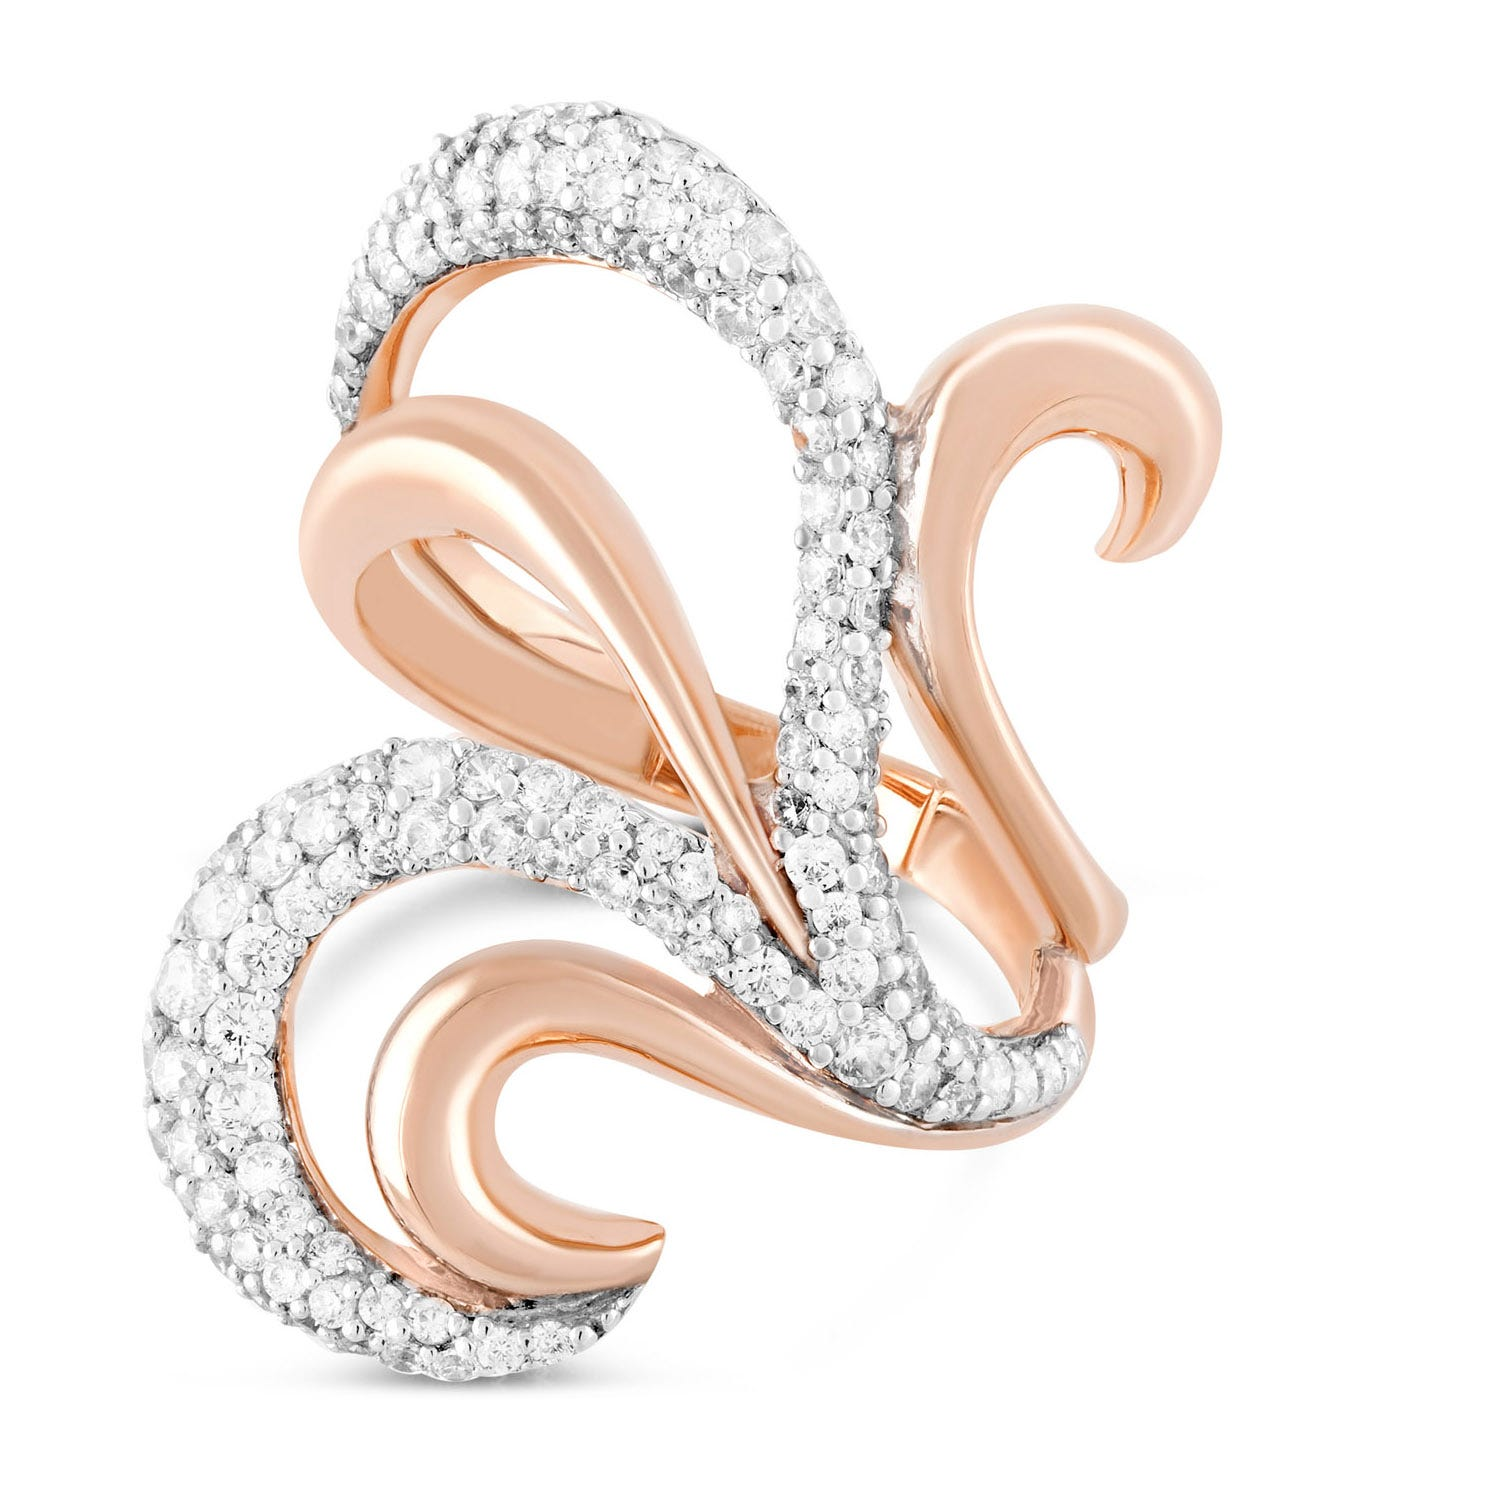 Rose Gold-Plated Cubic Zirconia Fancy Dress Ring